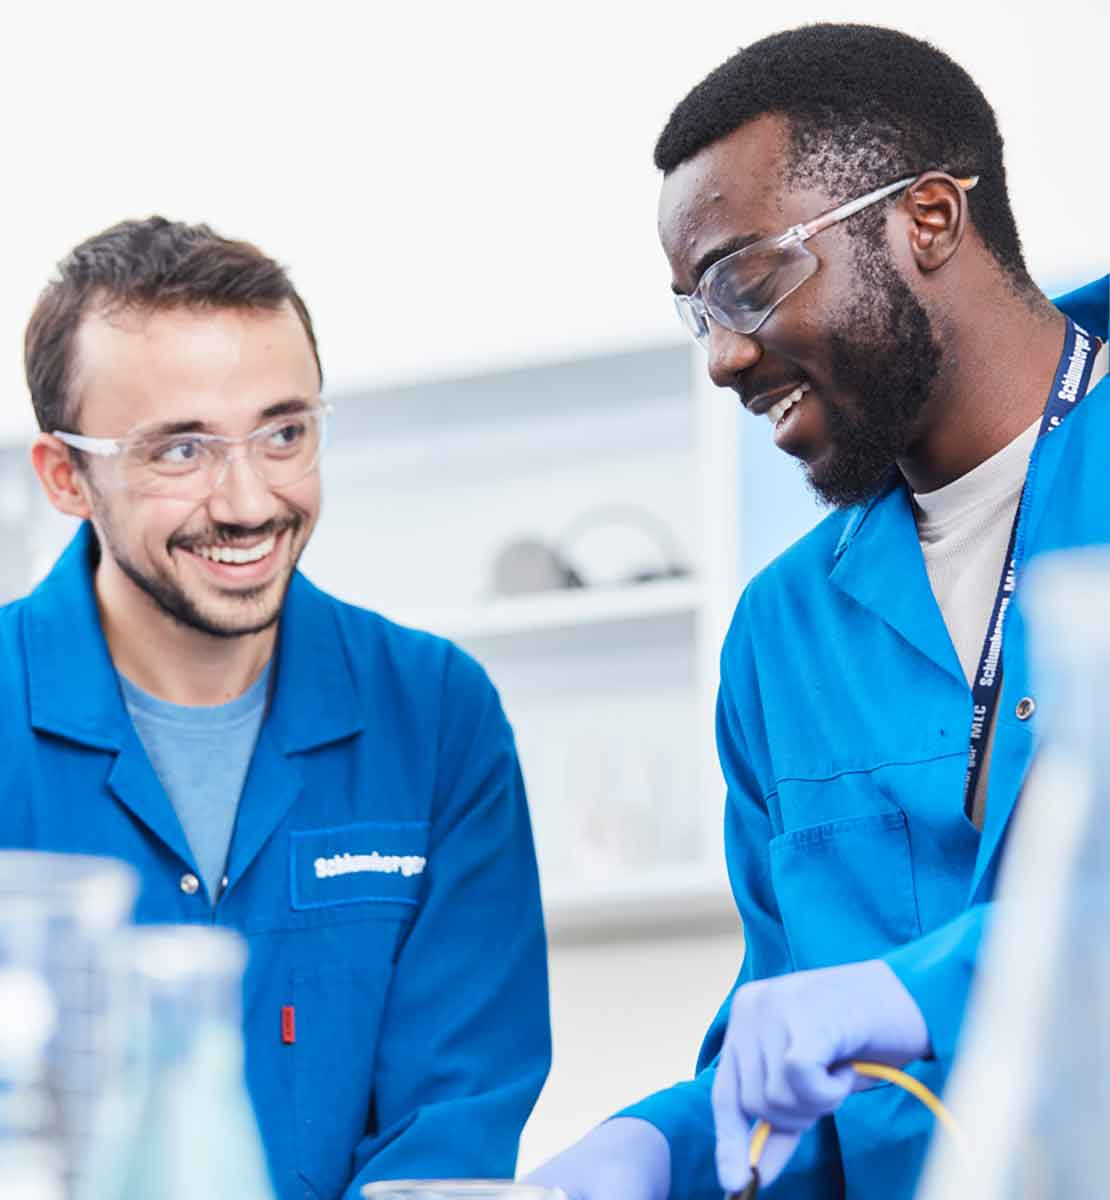 Schlumberger employees work together in lab.